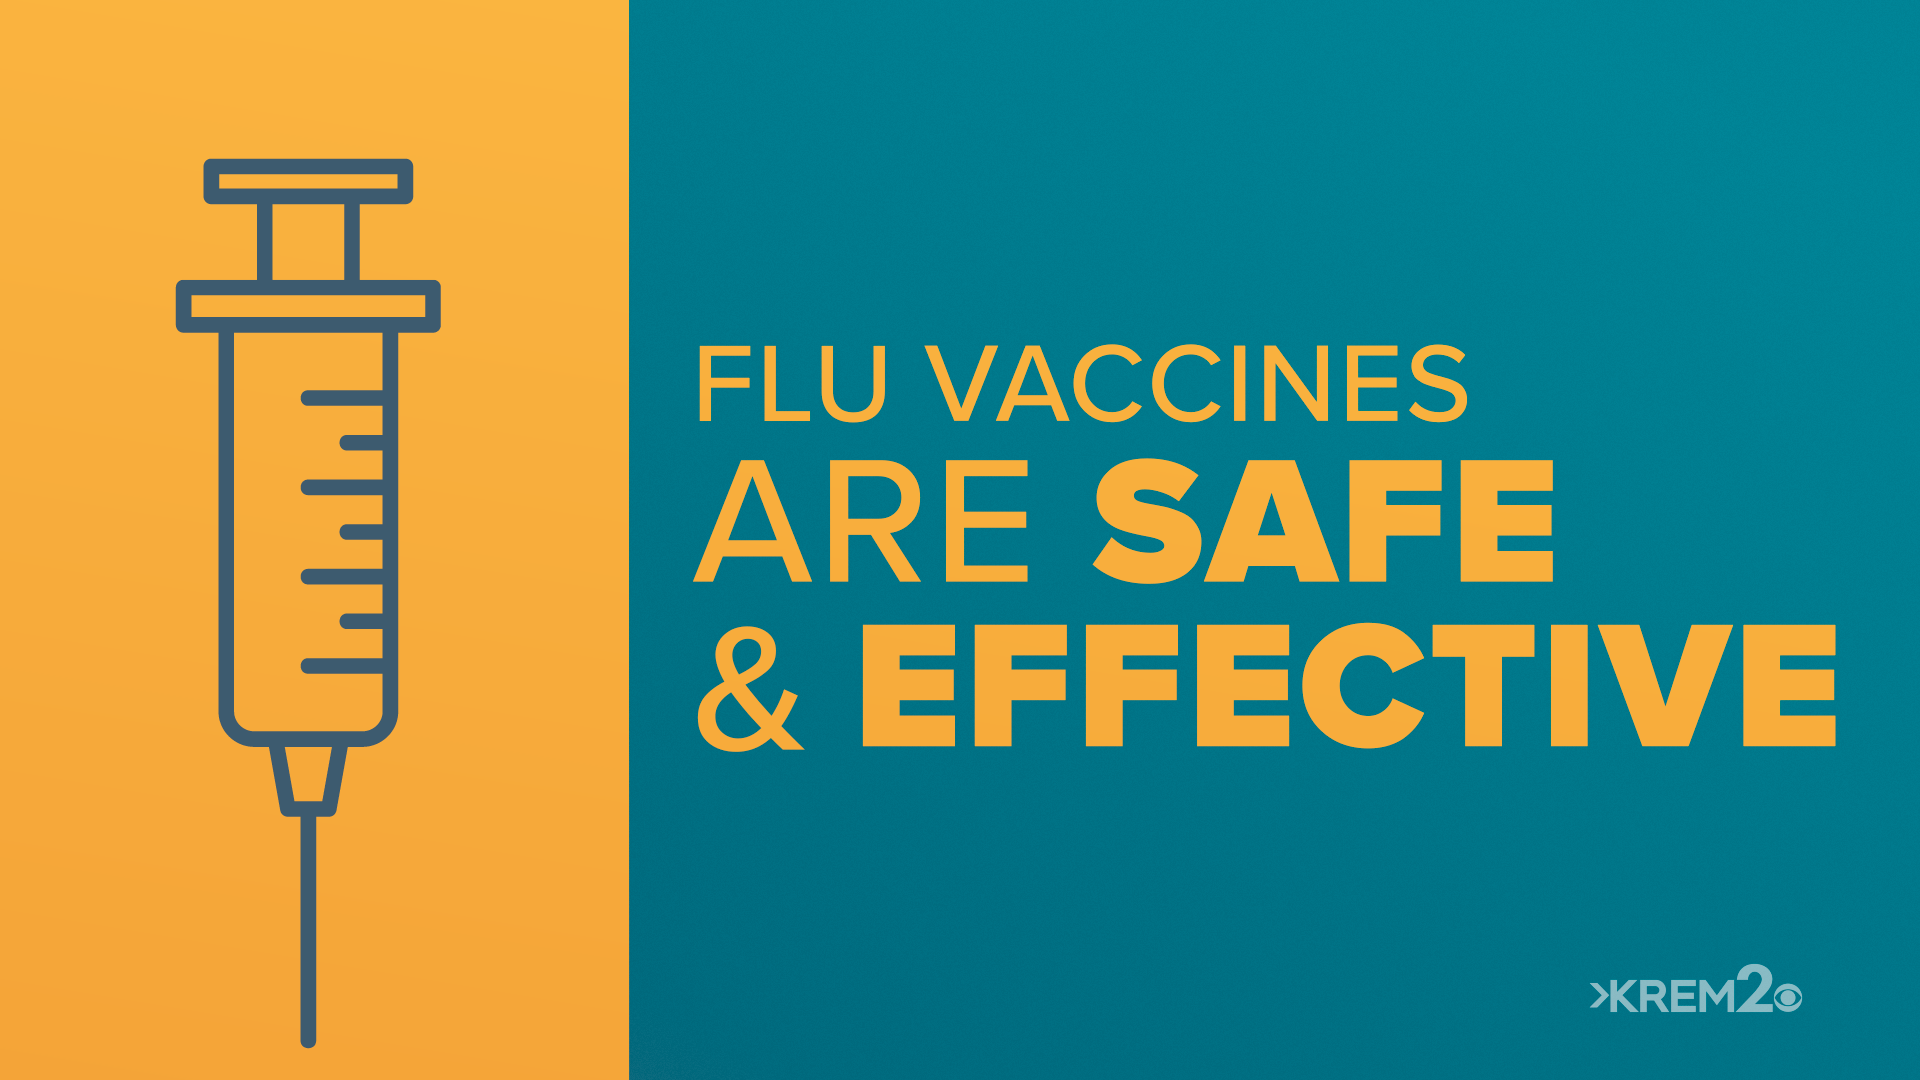 Health officials say it's important to get flu vaccine in age of COVID-19